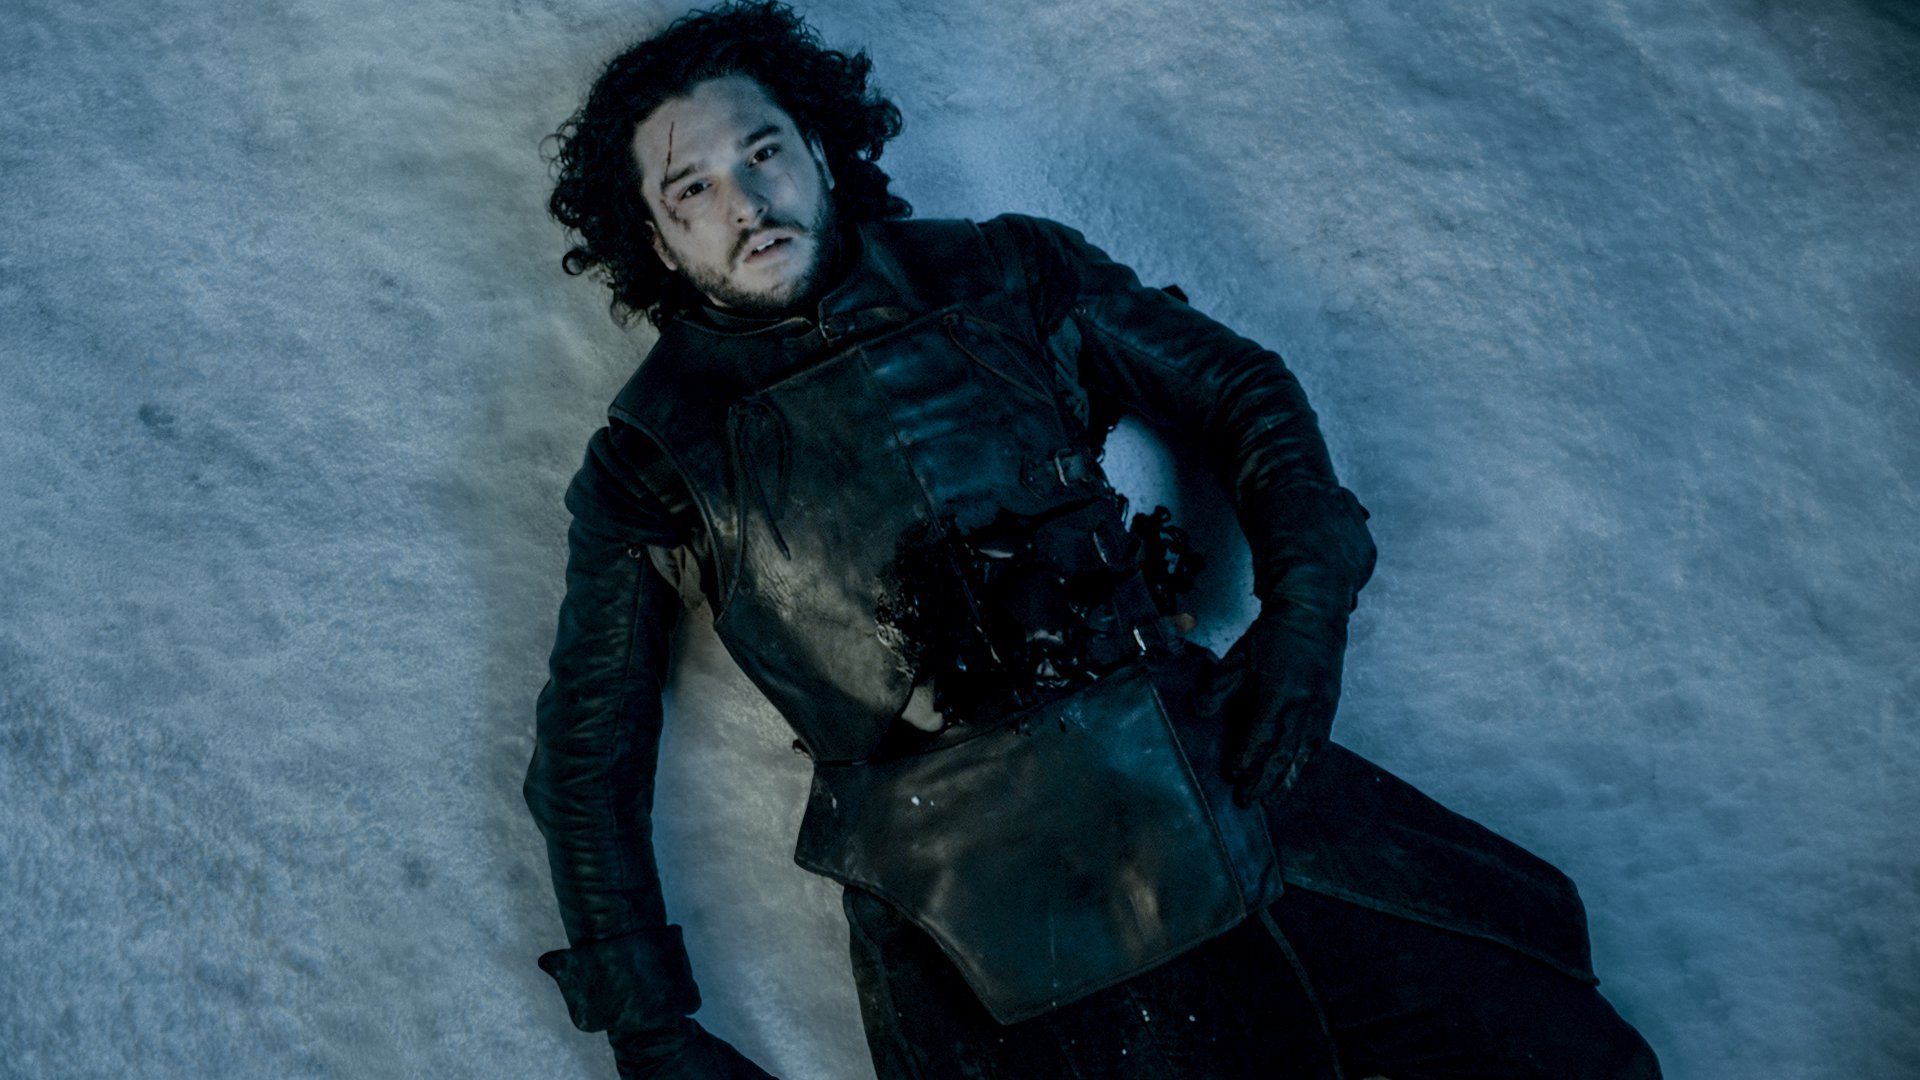 Jon Snow,George RR Martin,image,pic,photo,picture,Game Of Thrones,GoT,HBO